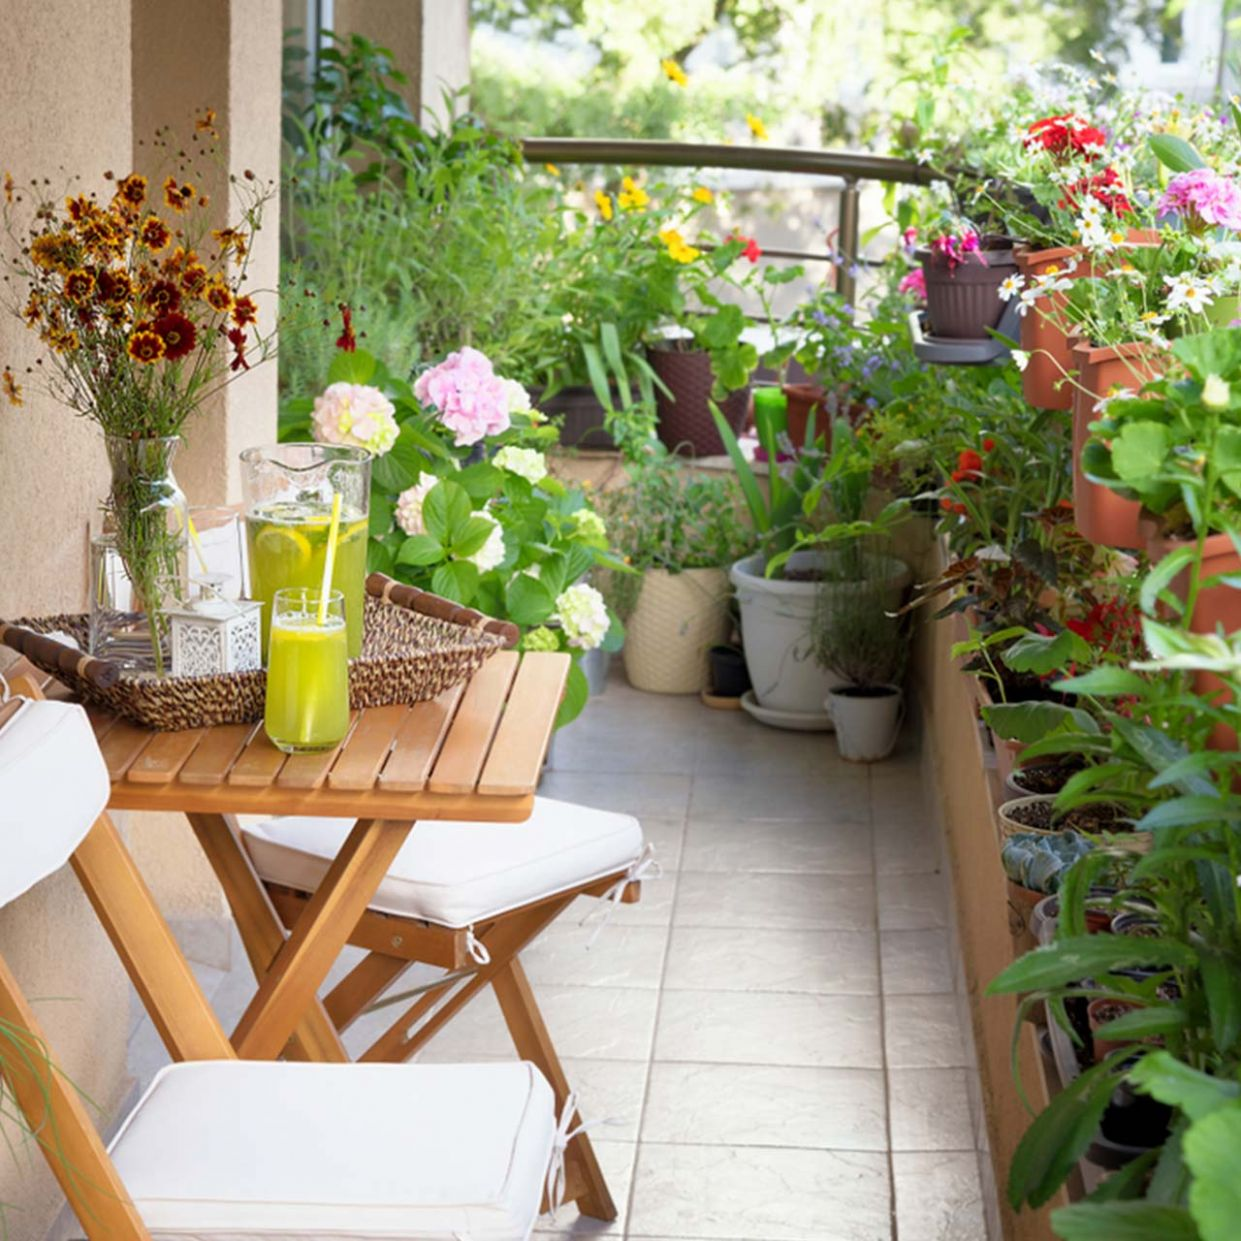 Balcony Design Ideas for Indian Homes and Apartments | Design Cafe - balcony design ideas india